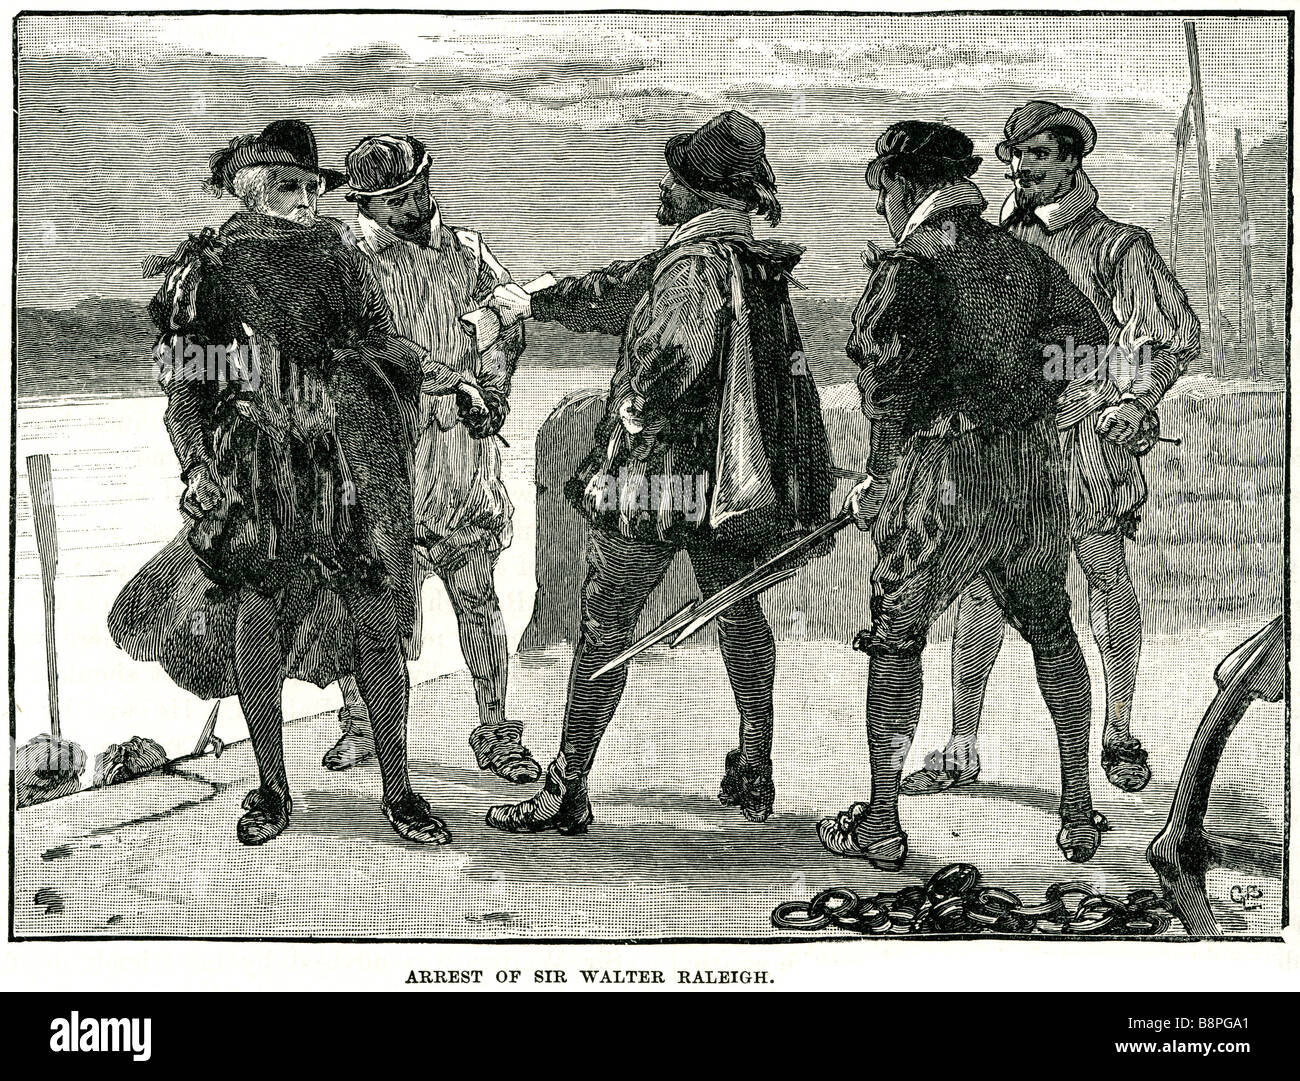 arrest of Sir Walter Raleigh or Ralegh (c. 1552 – 29 October 1618), was a famed English writer, poet, soldier, courtier - Stock Image